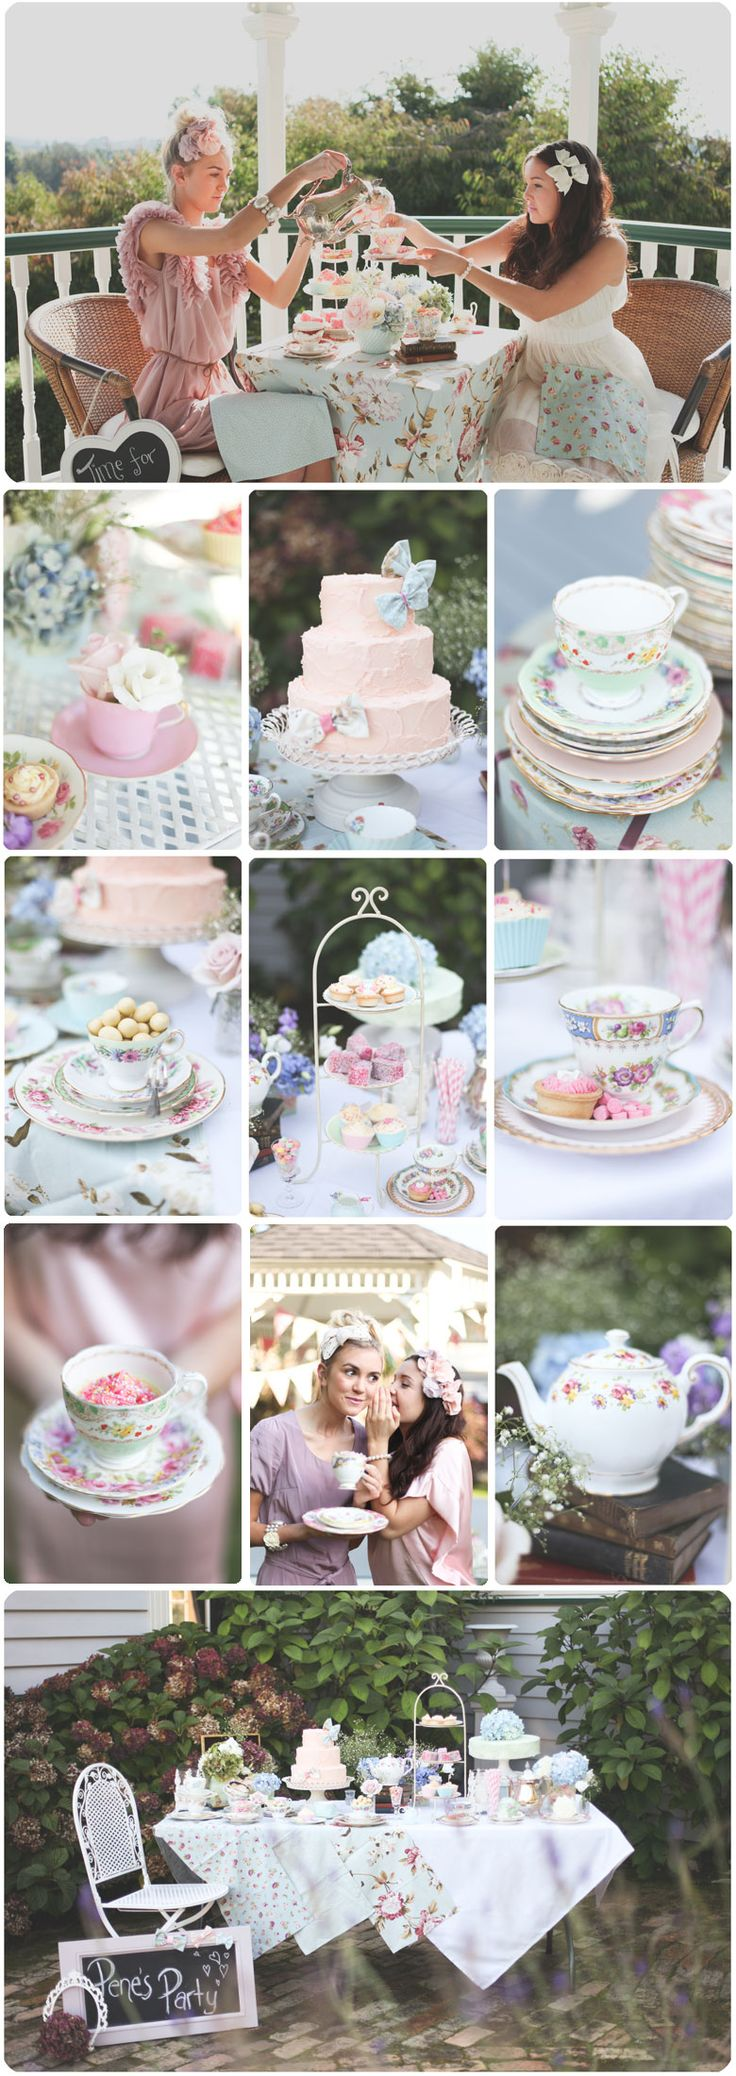 What could be more lovely than hosting a sweet afternoon tea filled with delicious treats, flowers, vintage china, a hint of tradition and of course your darling friends.